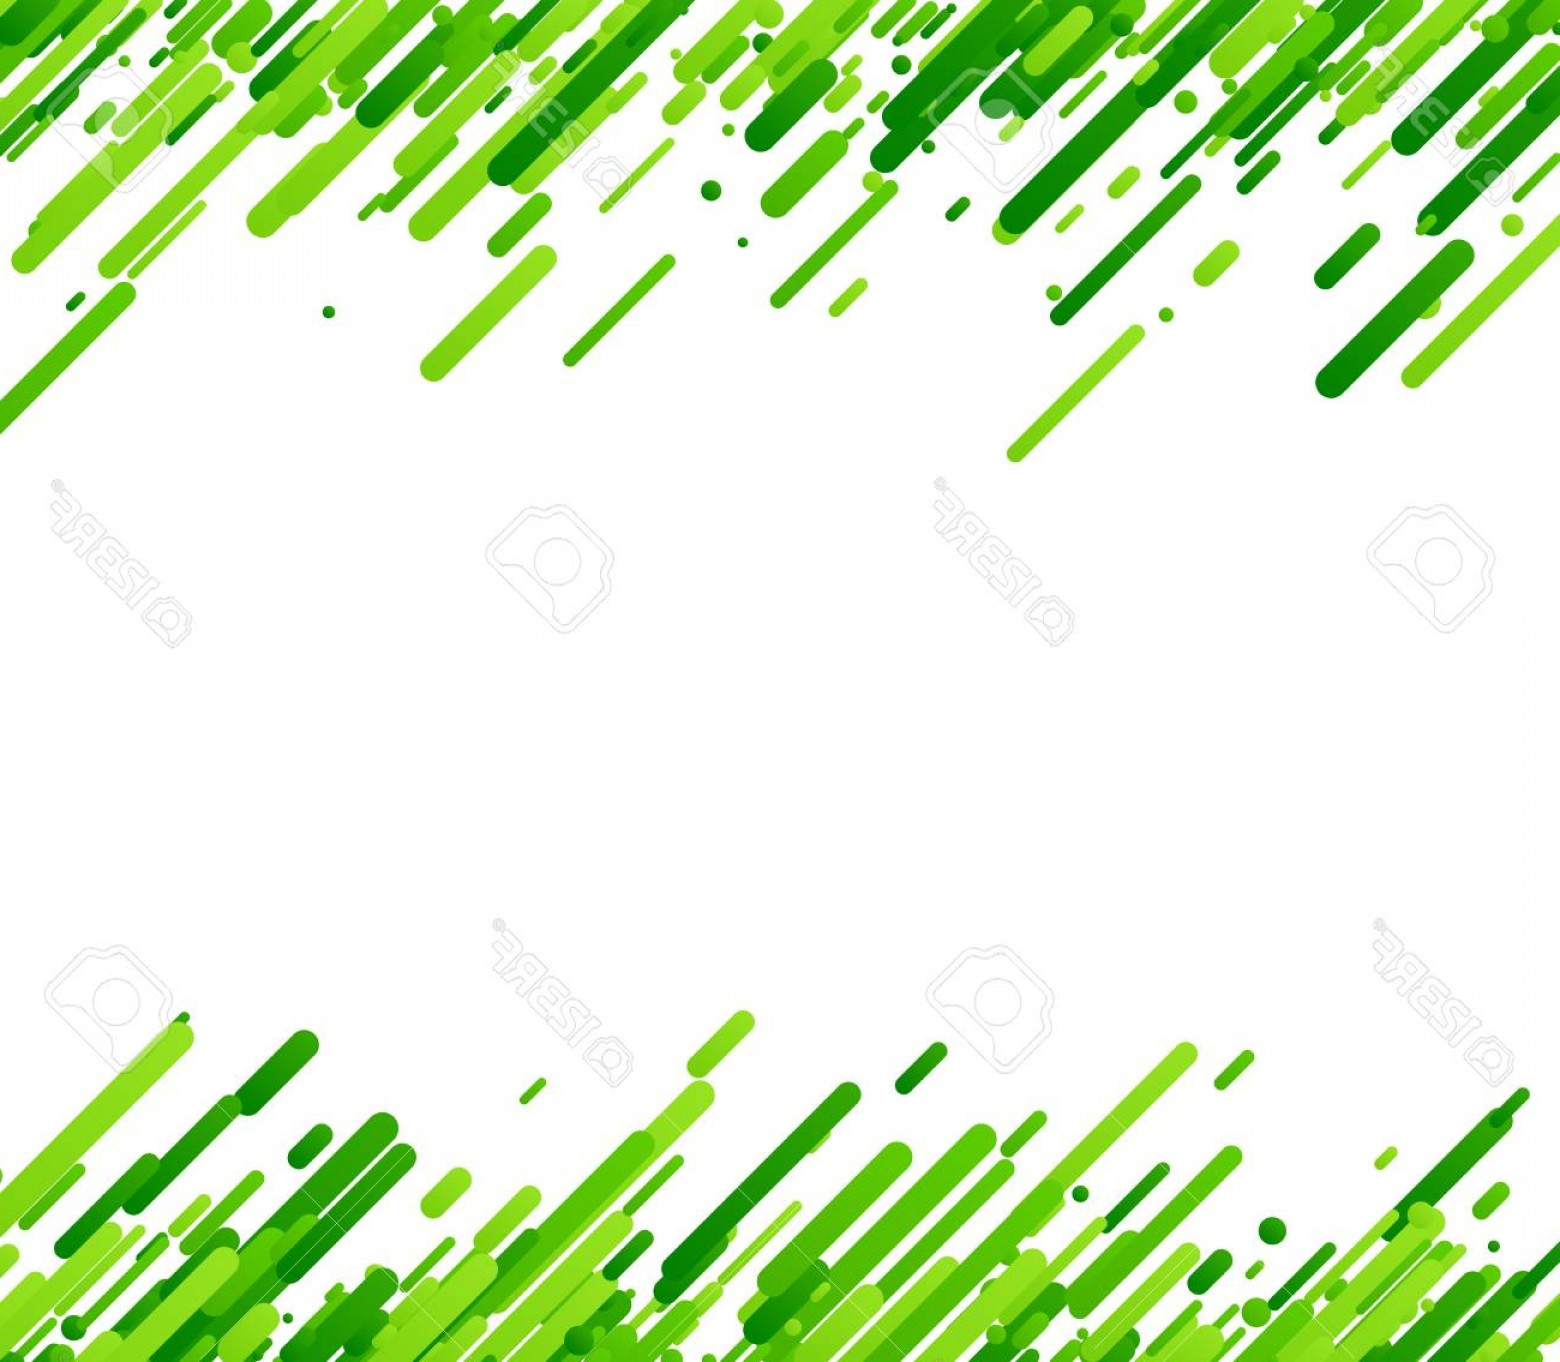 Green And White Vector: Photostock Vector Green Abstract Background On White Vector Paper Illustration